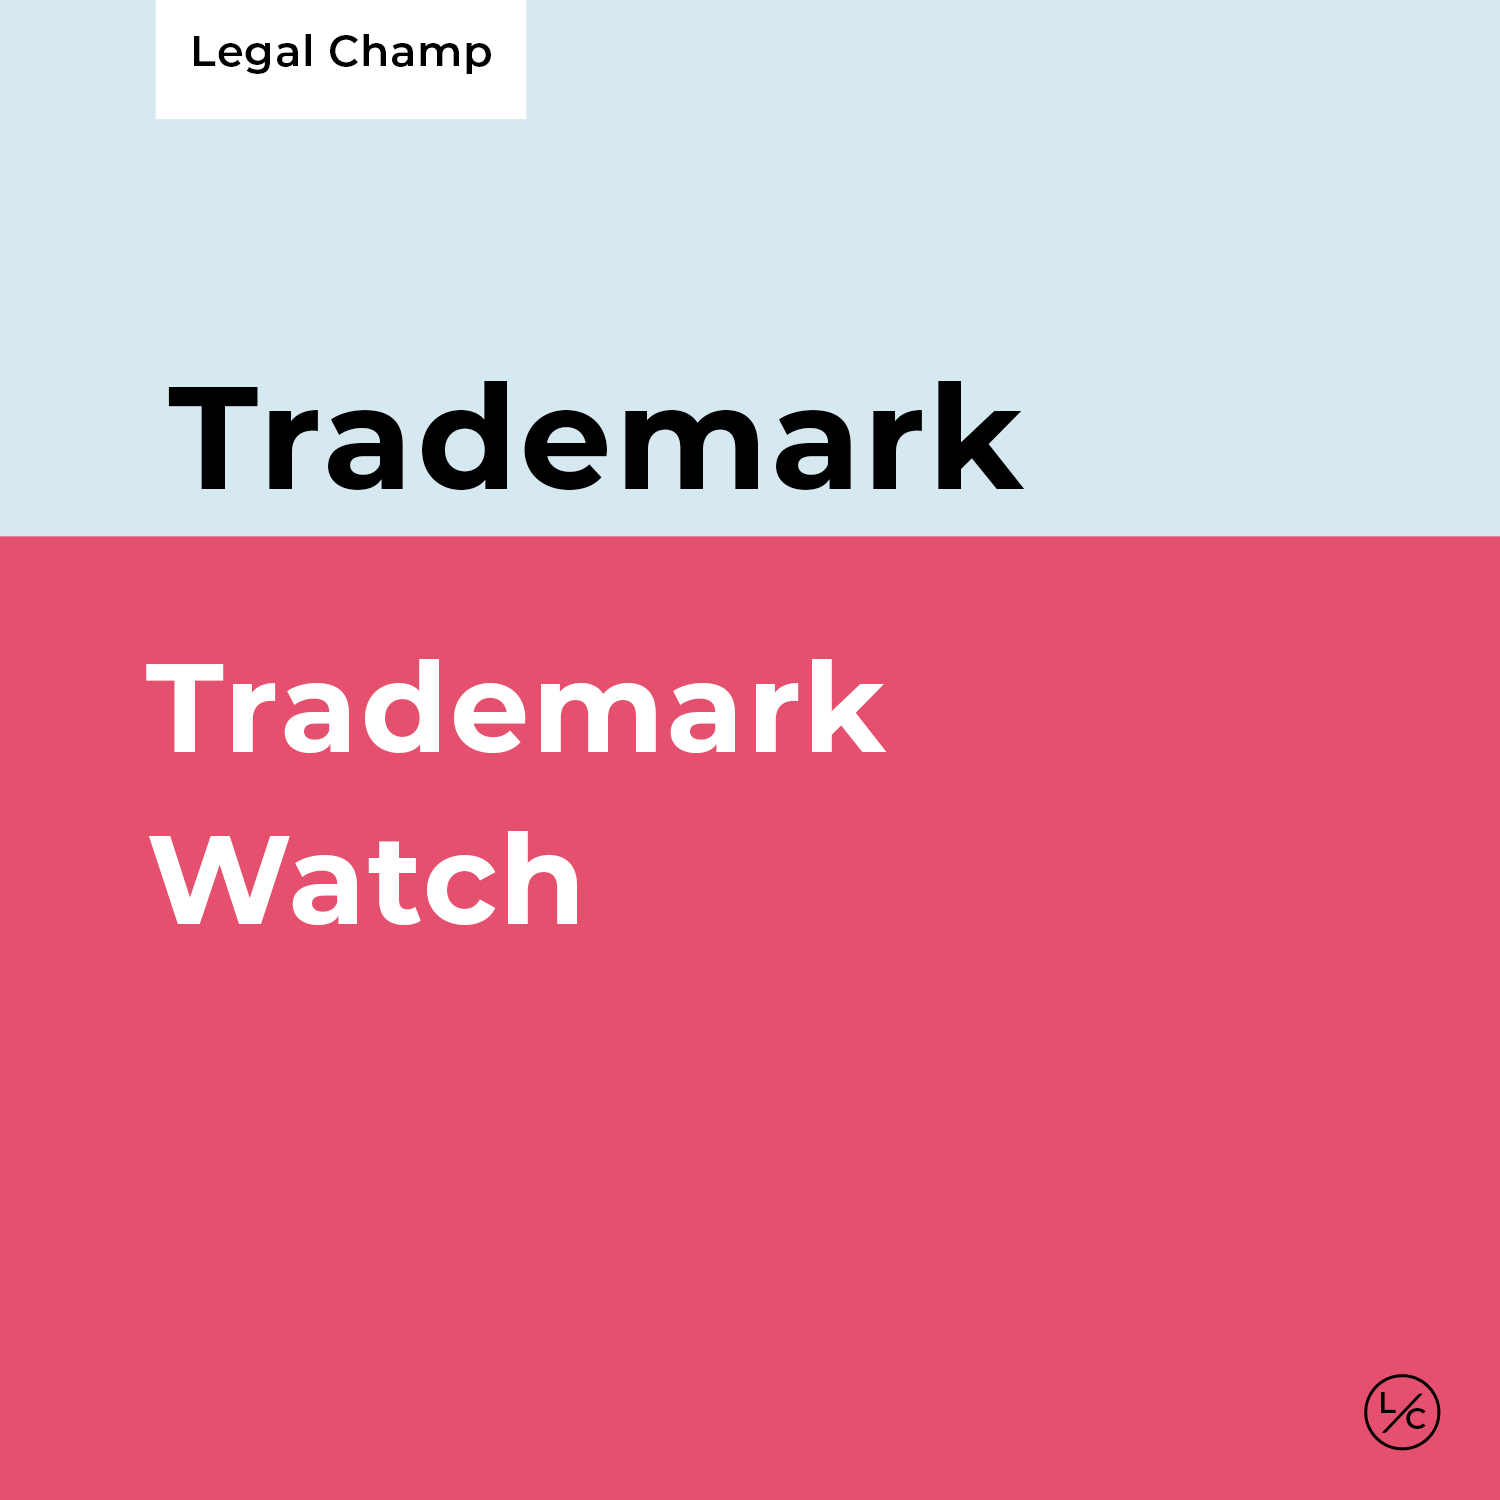 Trademark Watch